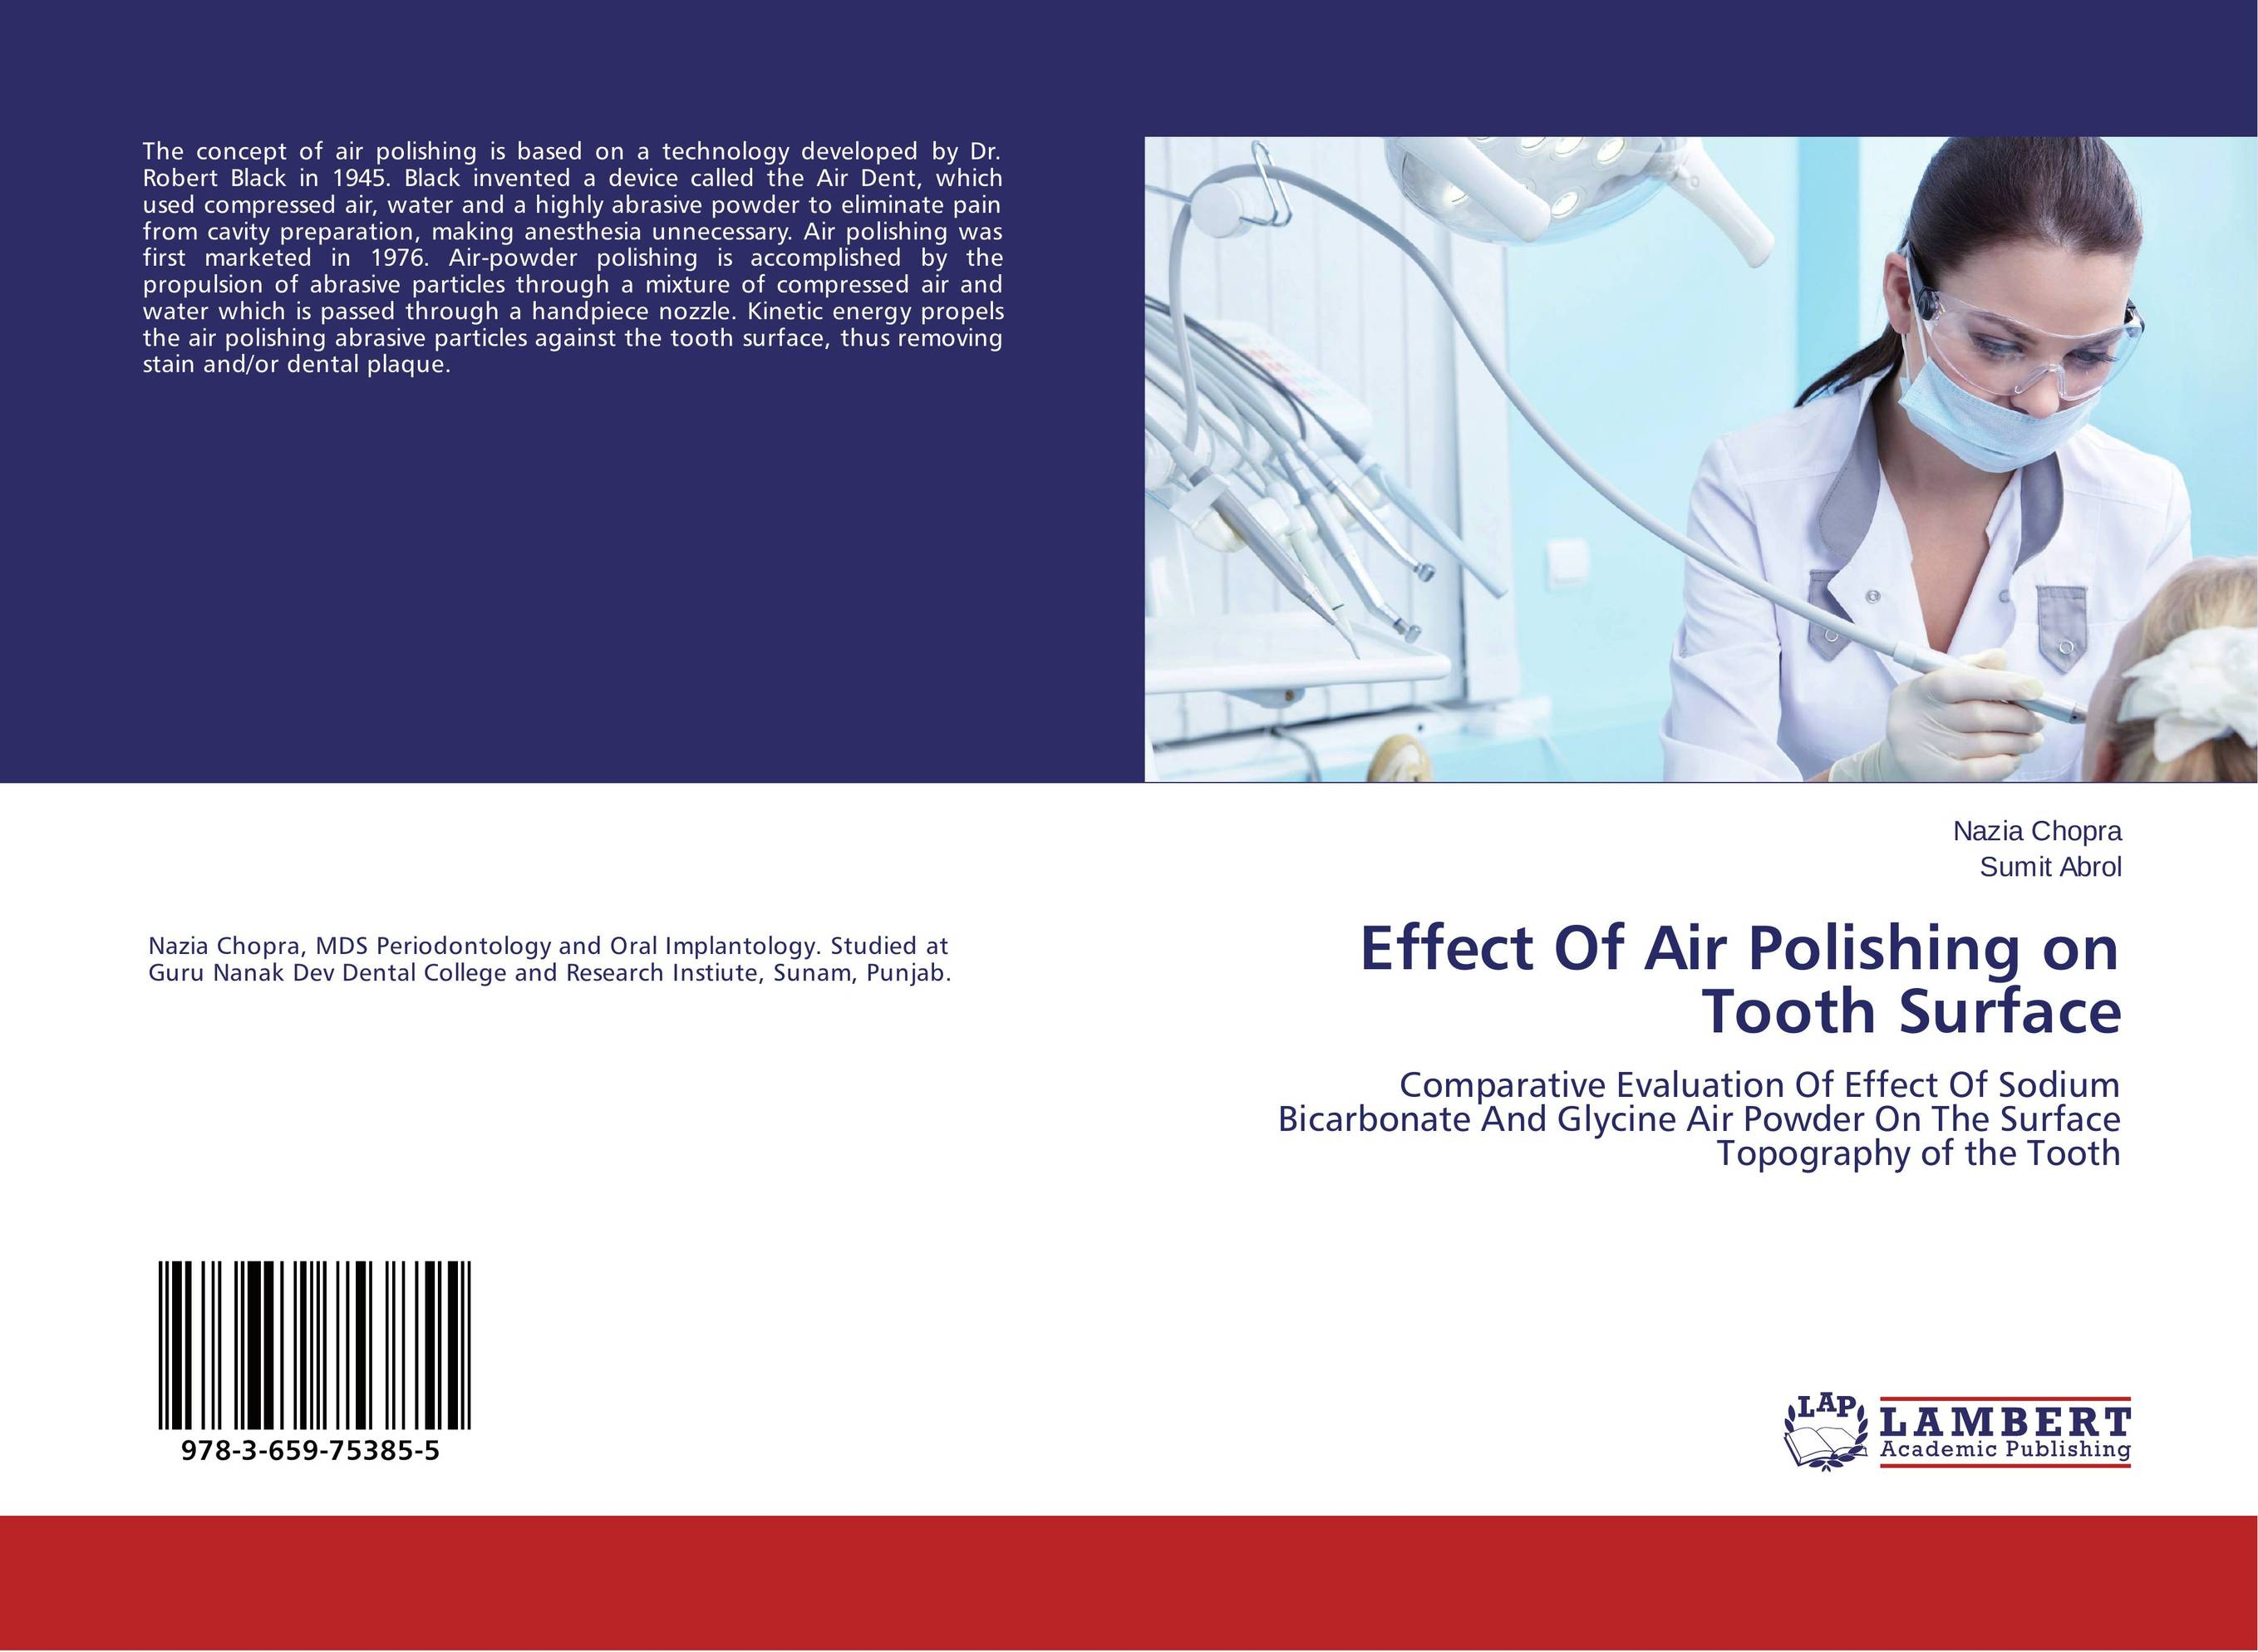 Effect Of Air Polishing on Tooth Surface simranjeet kaur amaninder singh and pranav gupta surface properties of dental materials under simulated tooth wear